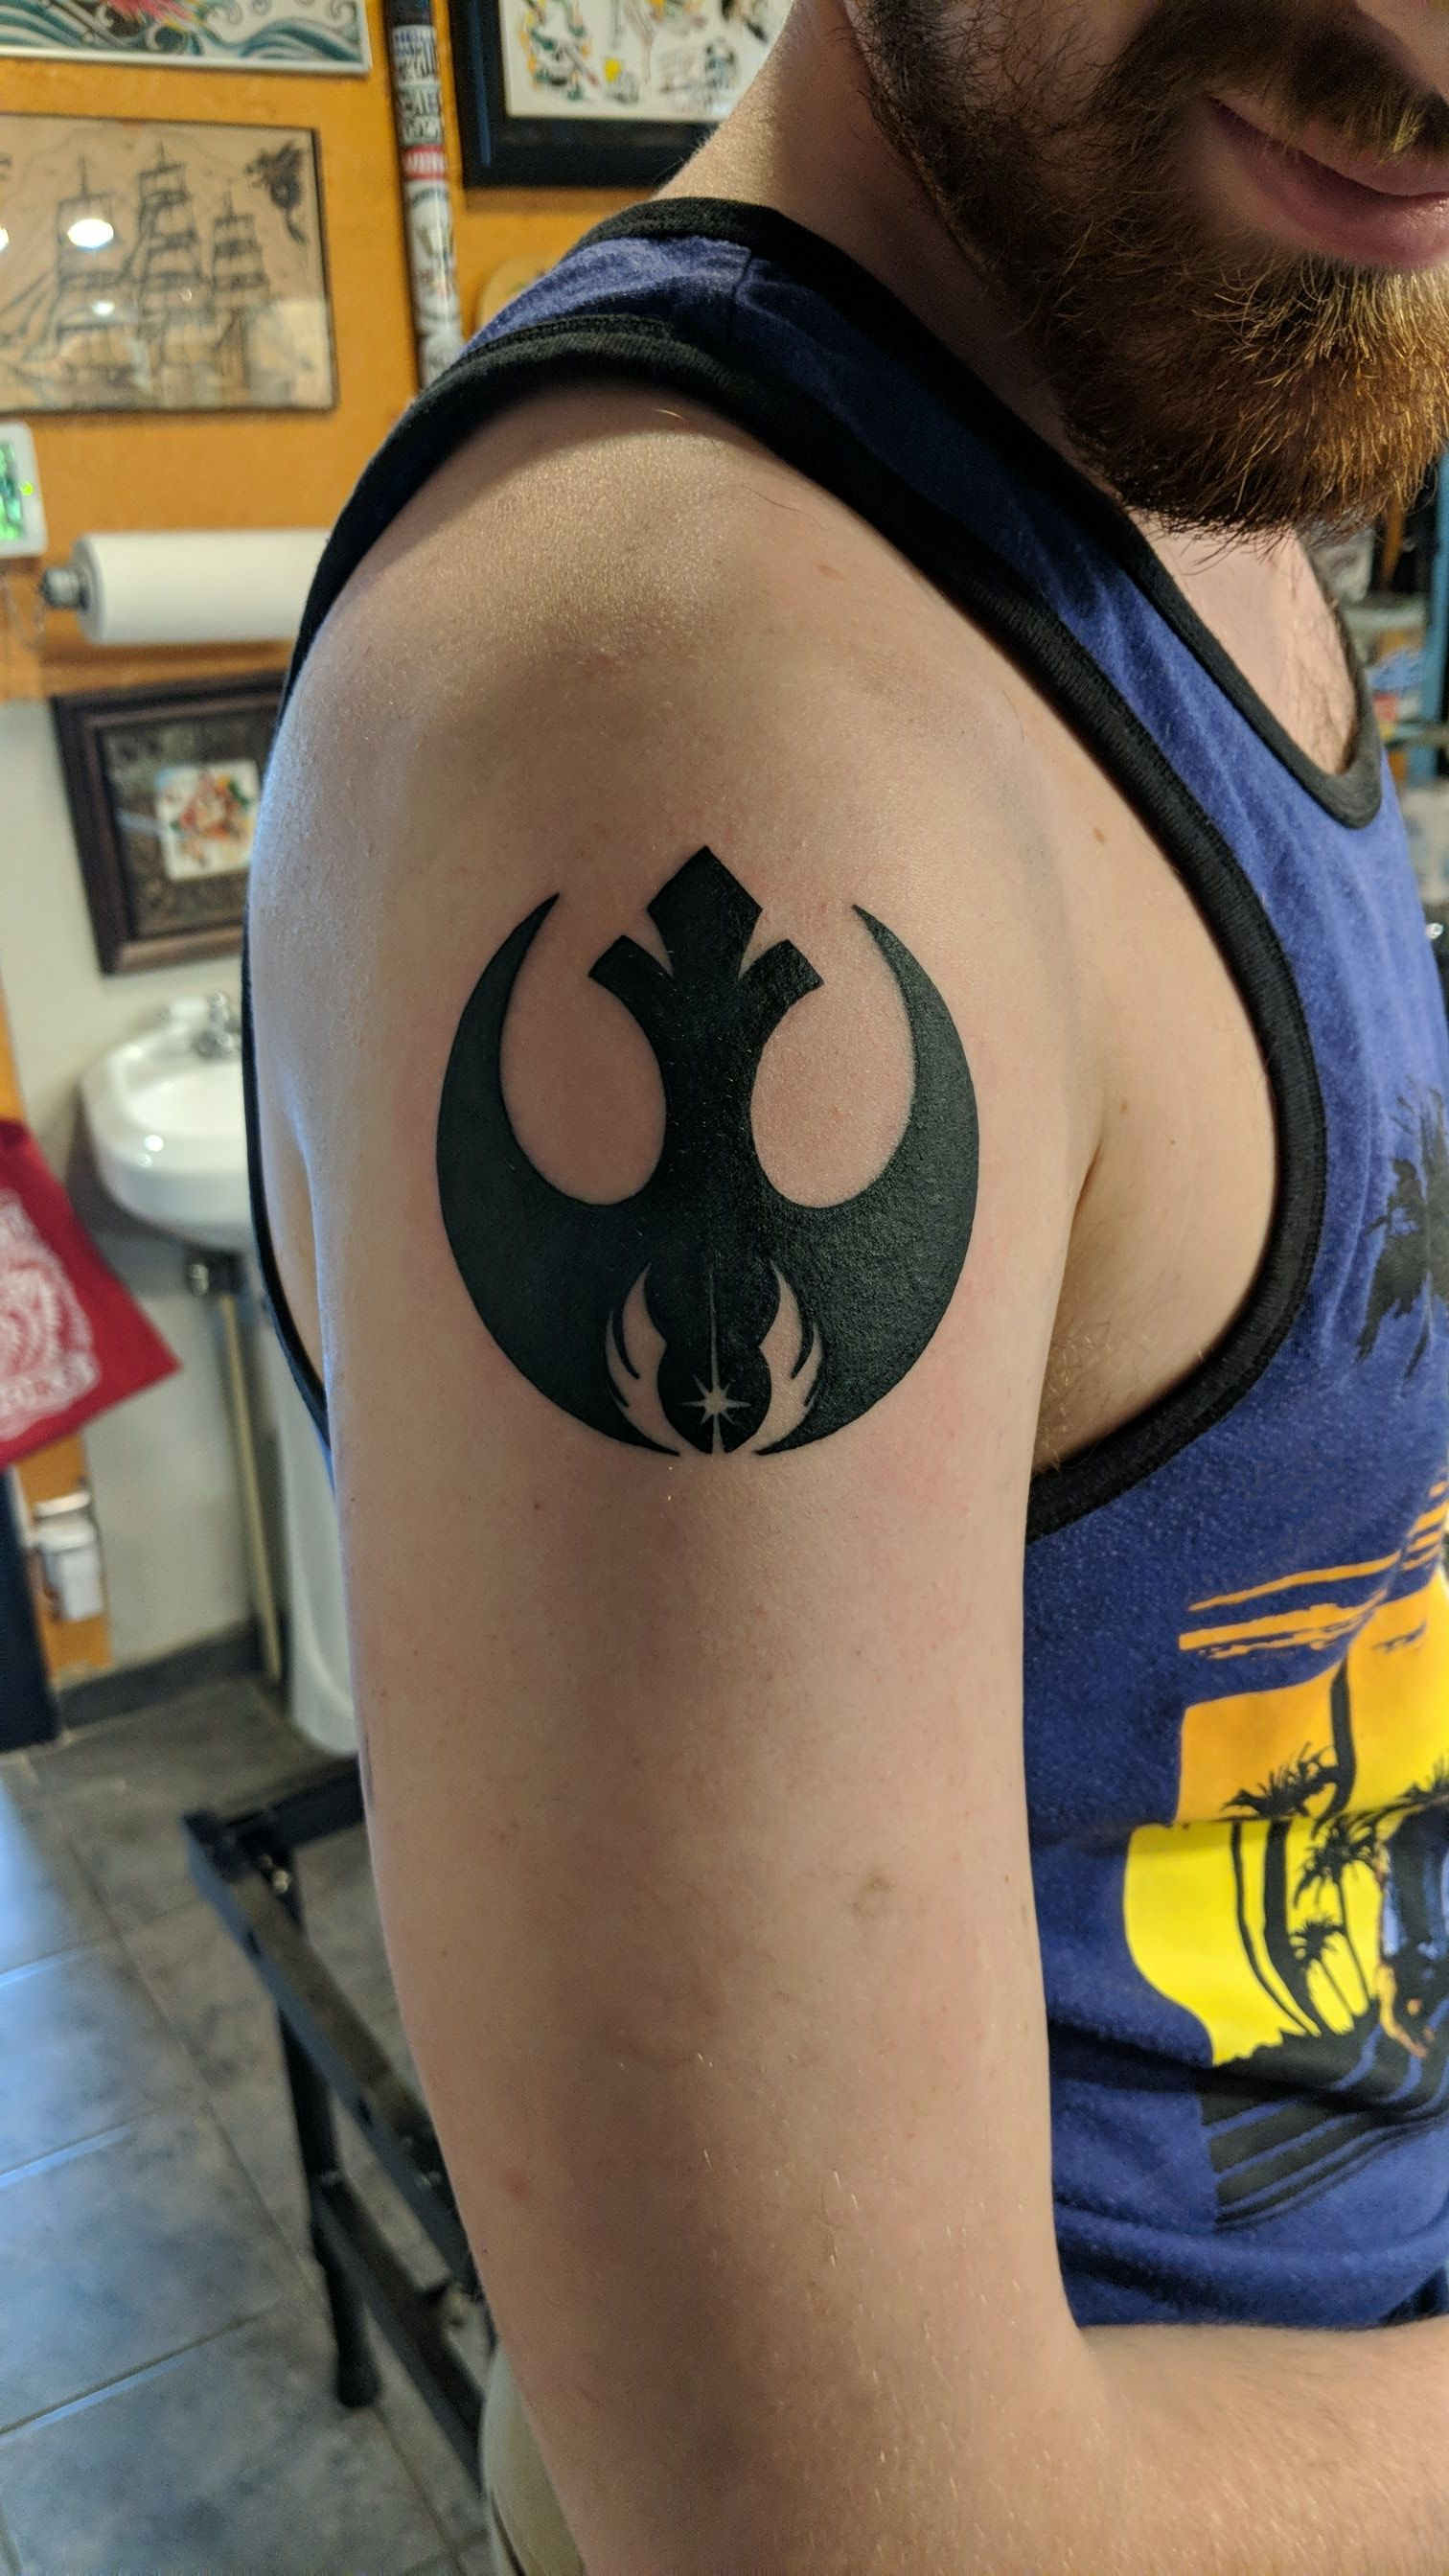 After years of wanting one, I finally broke down and got a tattoo yesterday! I\'m pretty pleased with it!